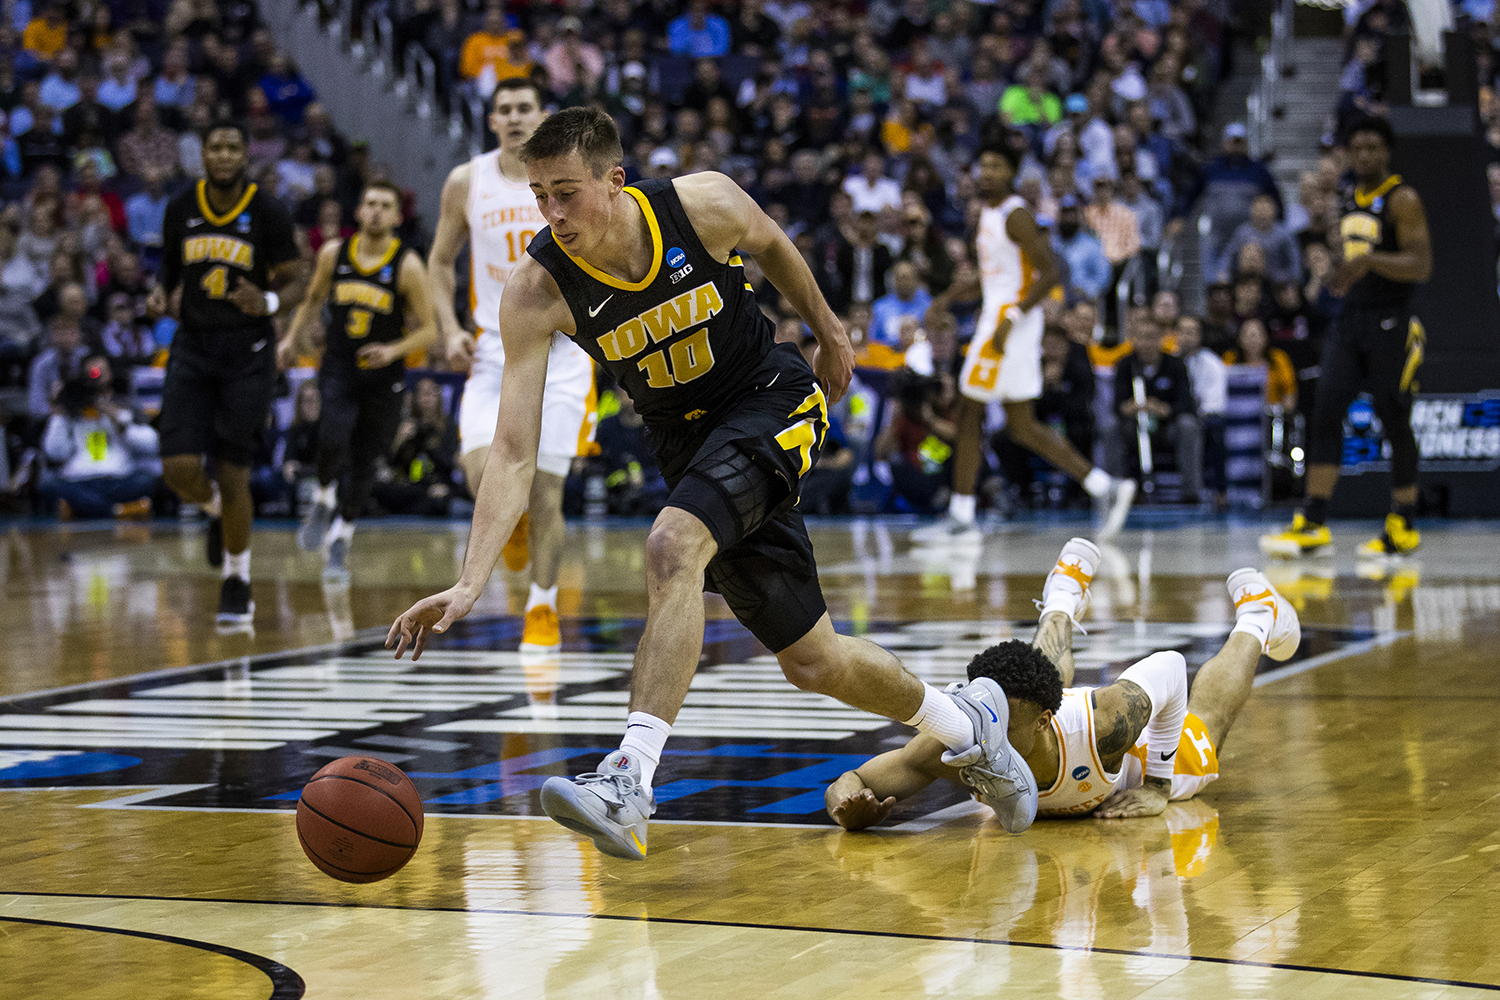 Iowa guard Joe Wieskamp steals the ball away from Tennessee guard Lamonte Turner during the NCAA game against Tennessee at Nationwide Arena on Sunday, March 24, 2019. The Volunteers defeated the Hawkeyes 83-77 in overtime.